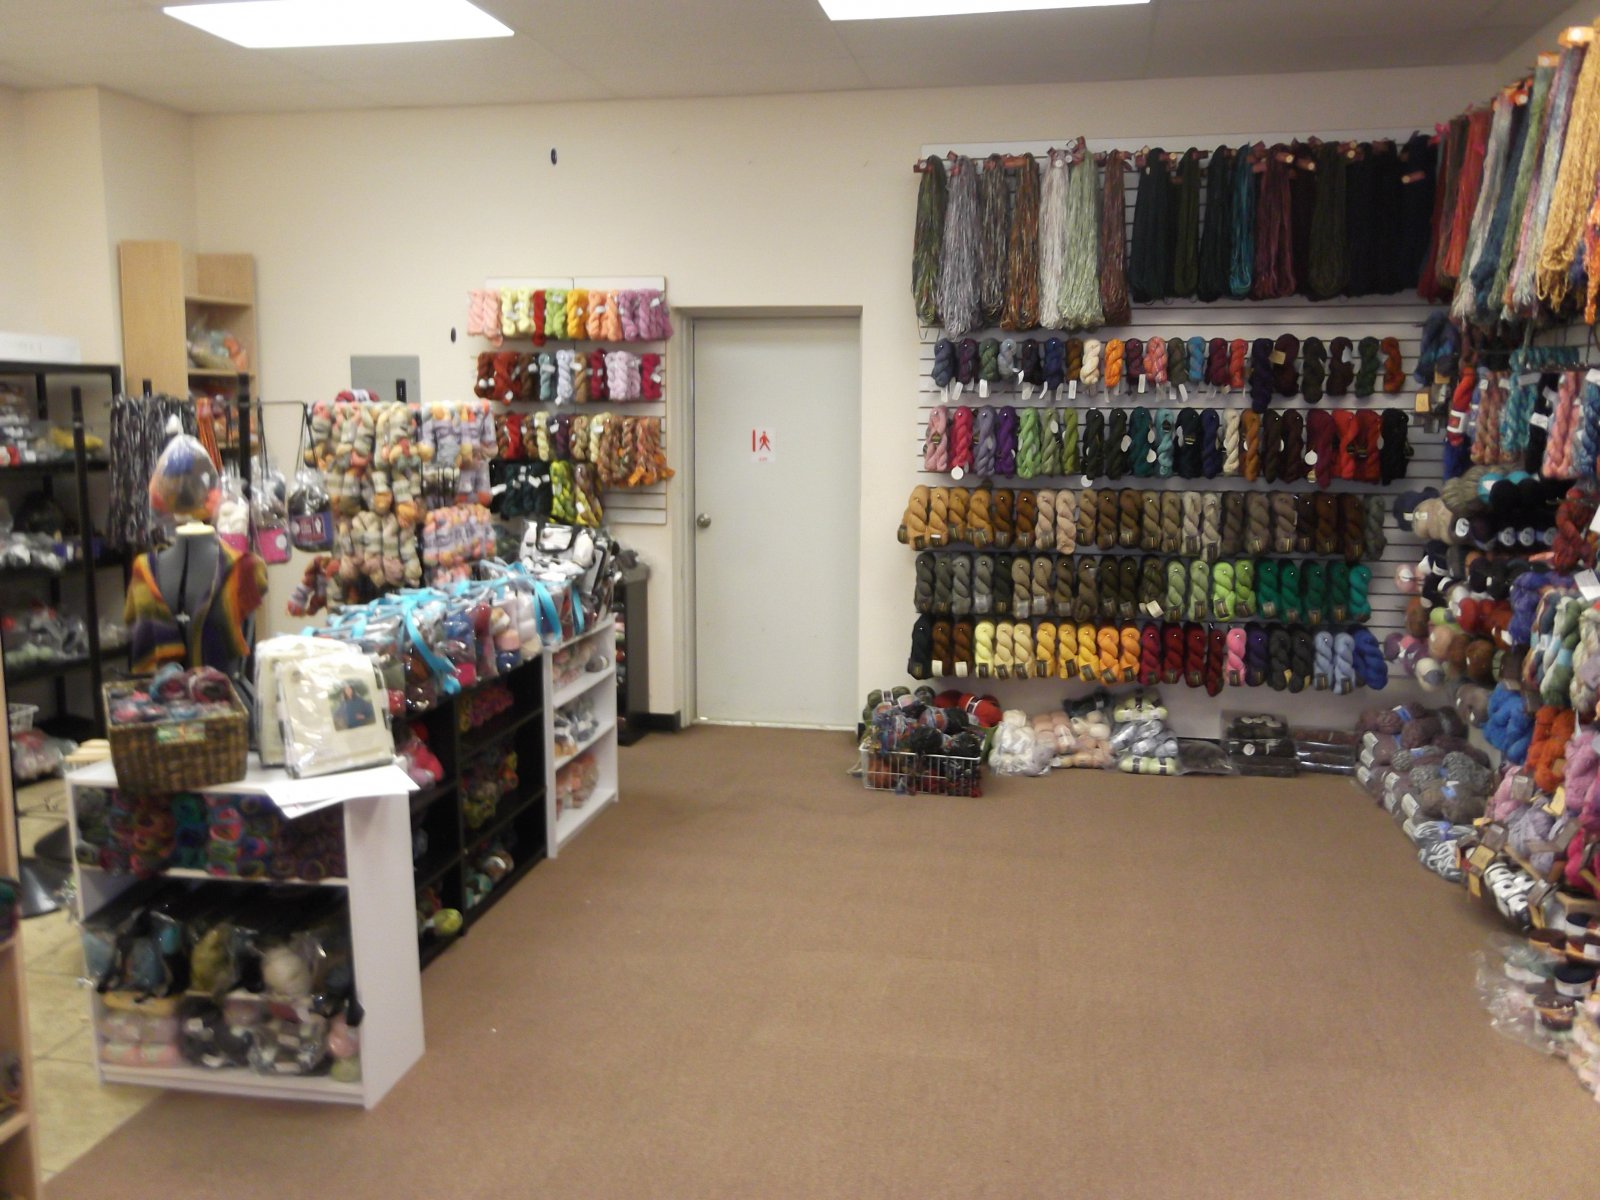 The back room is now clearance yarn.